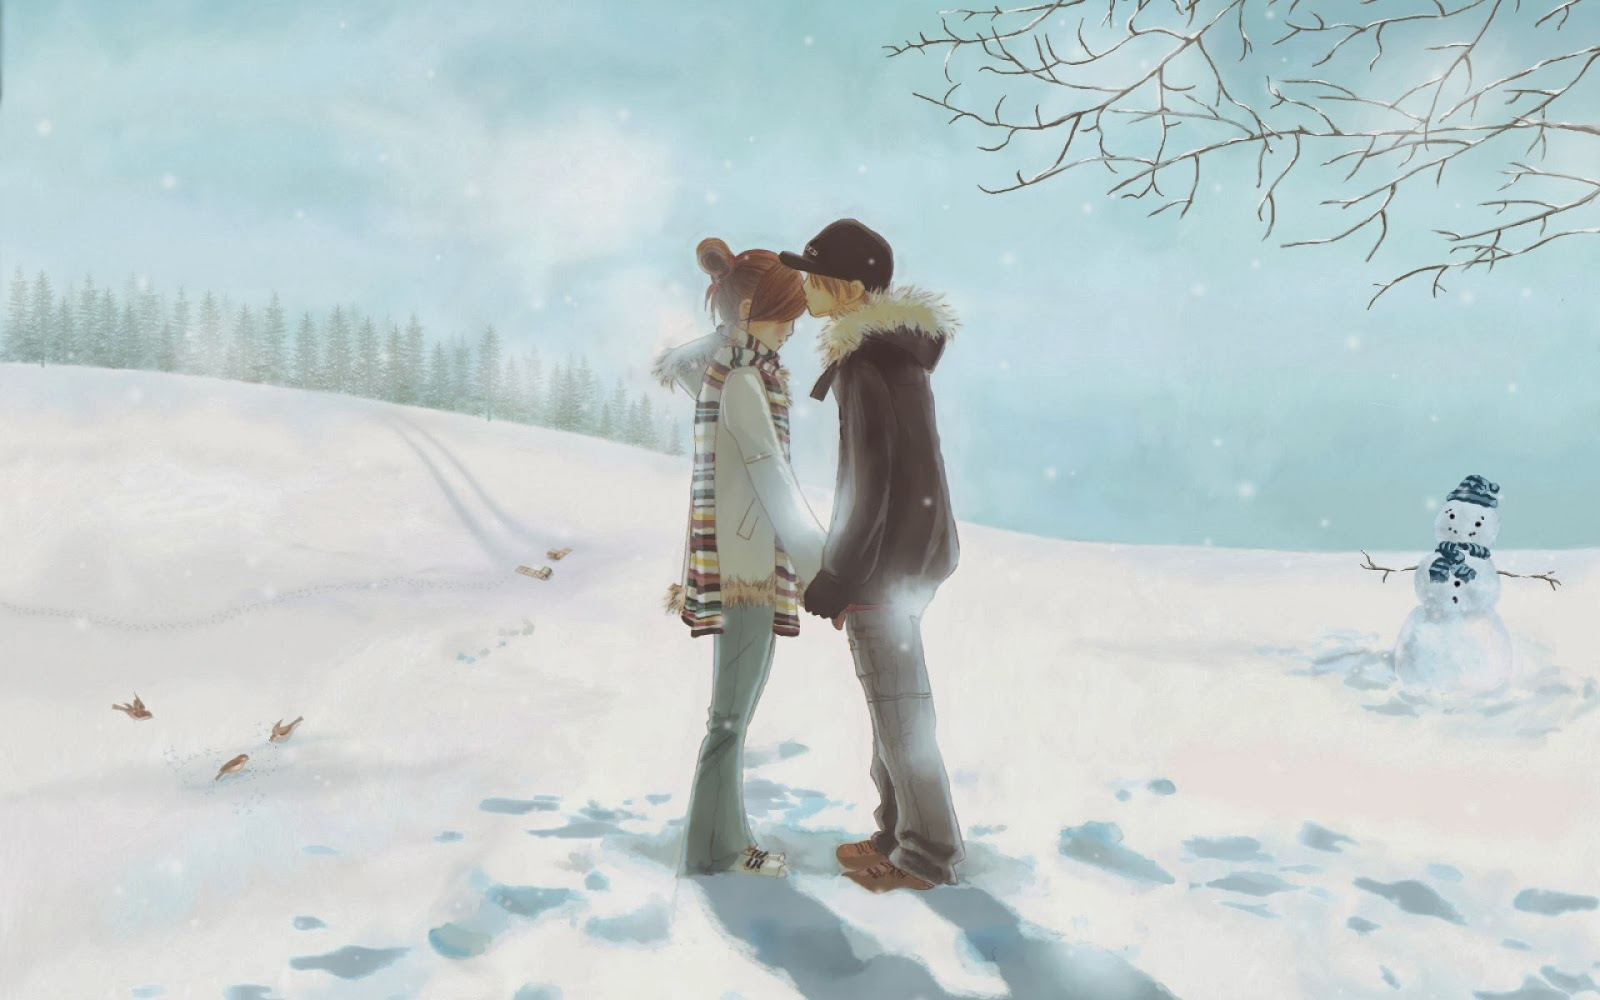 Winter-lover-boy-kiss-girl-animated-wallpaper-picture-download.jpg